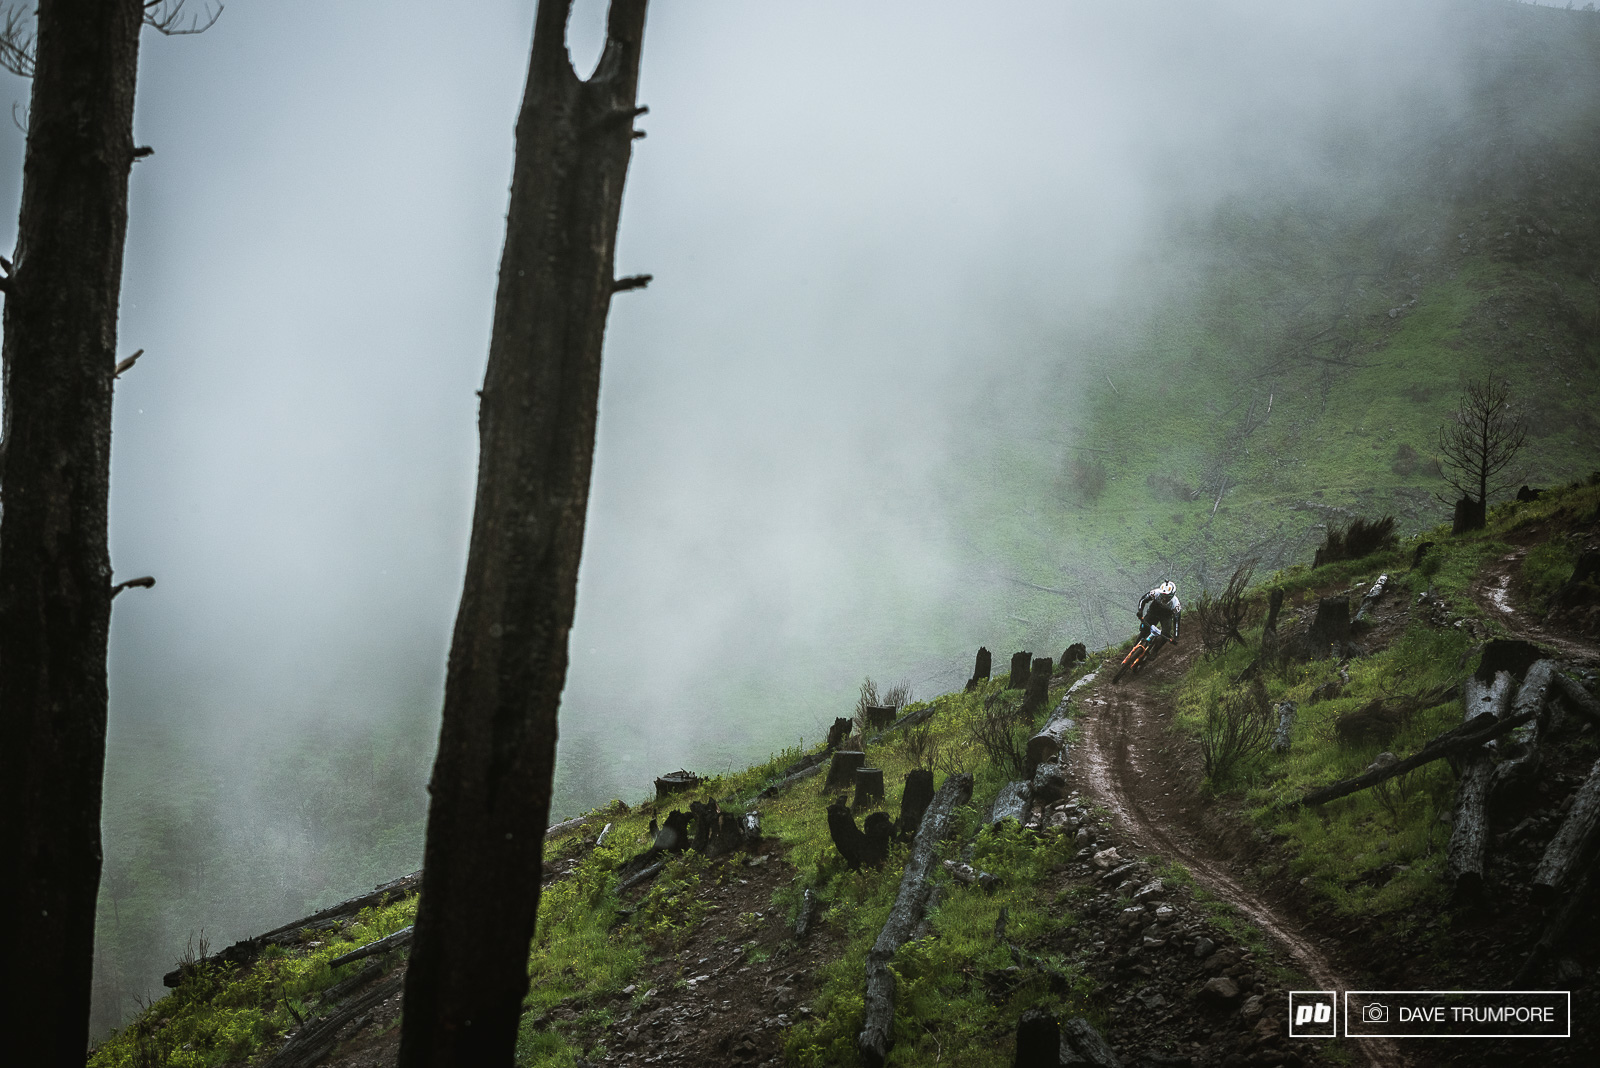 Florian Nicoli slides around in the clay on stage 1 in between monsoons of freezing cold rain.